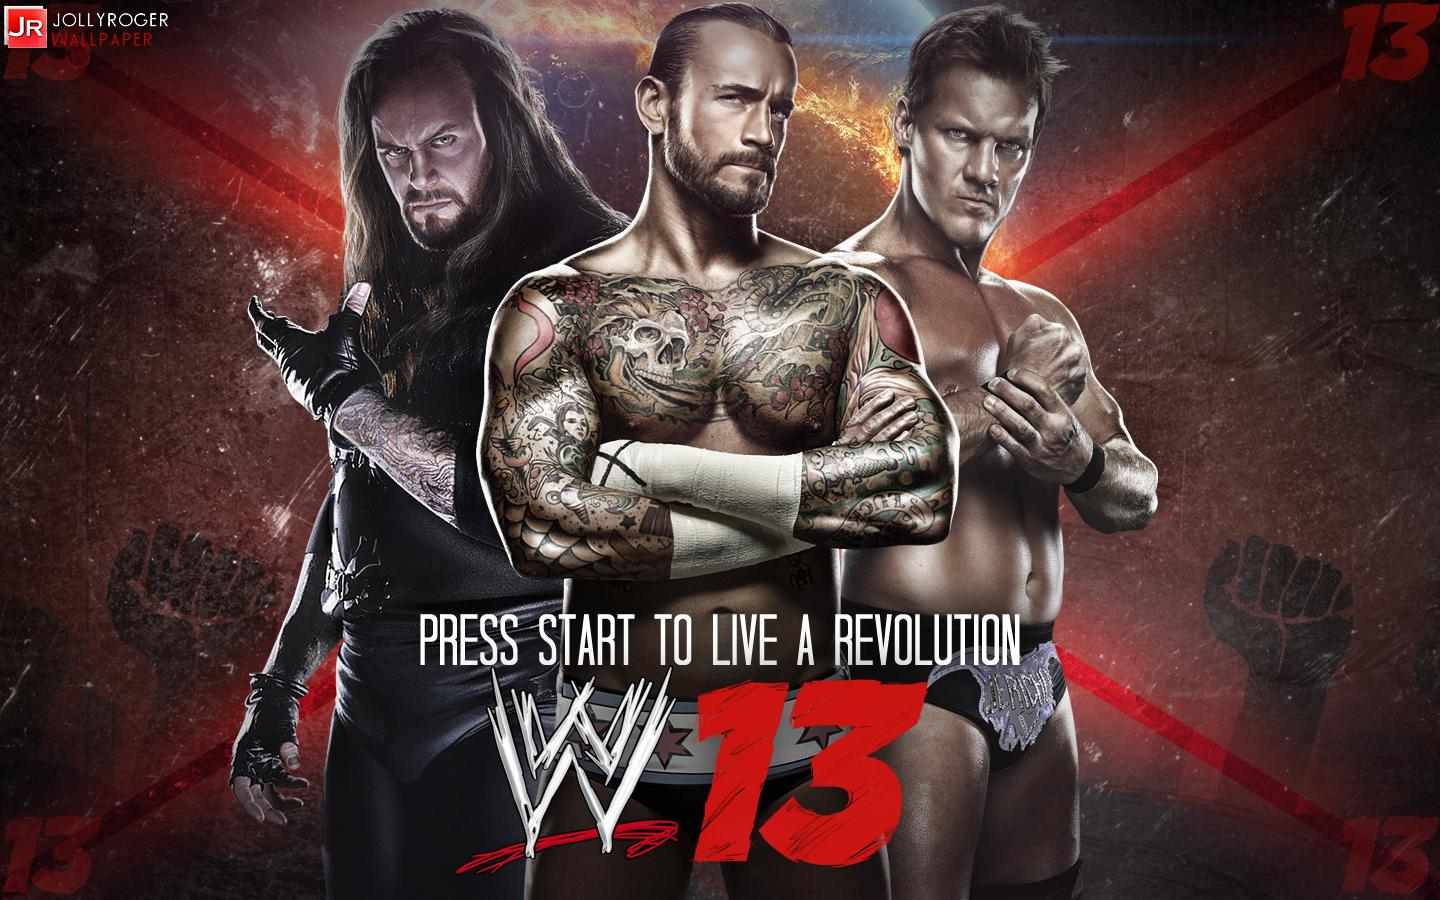 Download wwe game free for windows 81 - Softonic